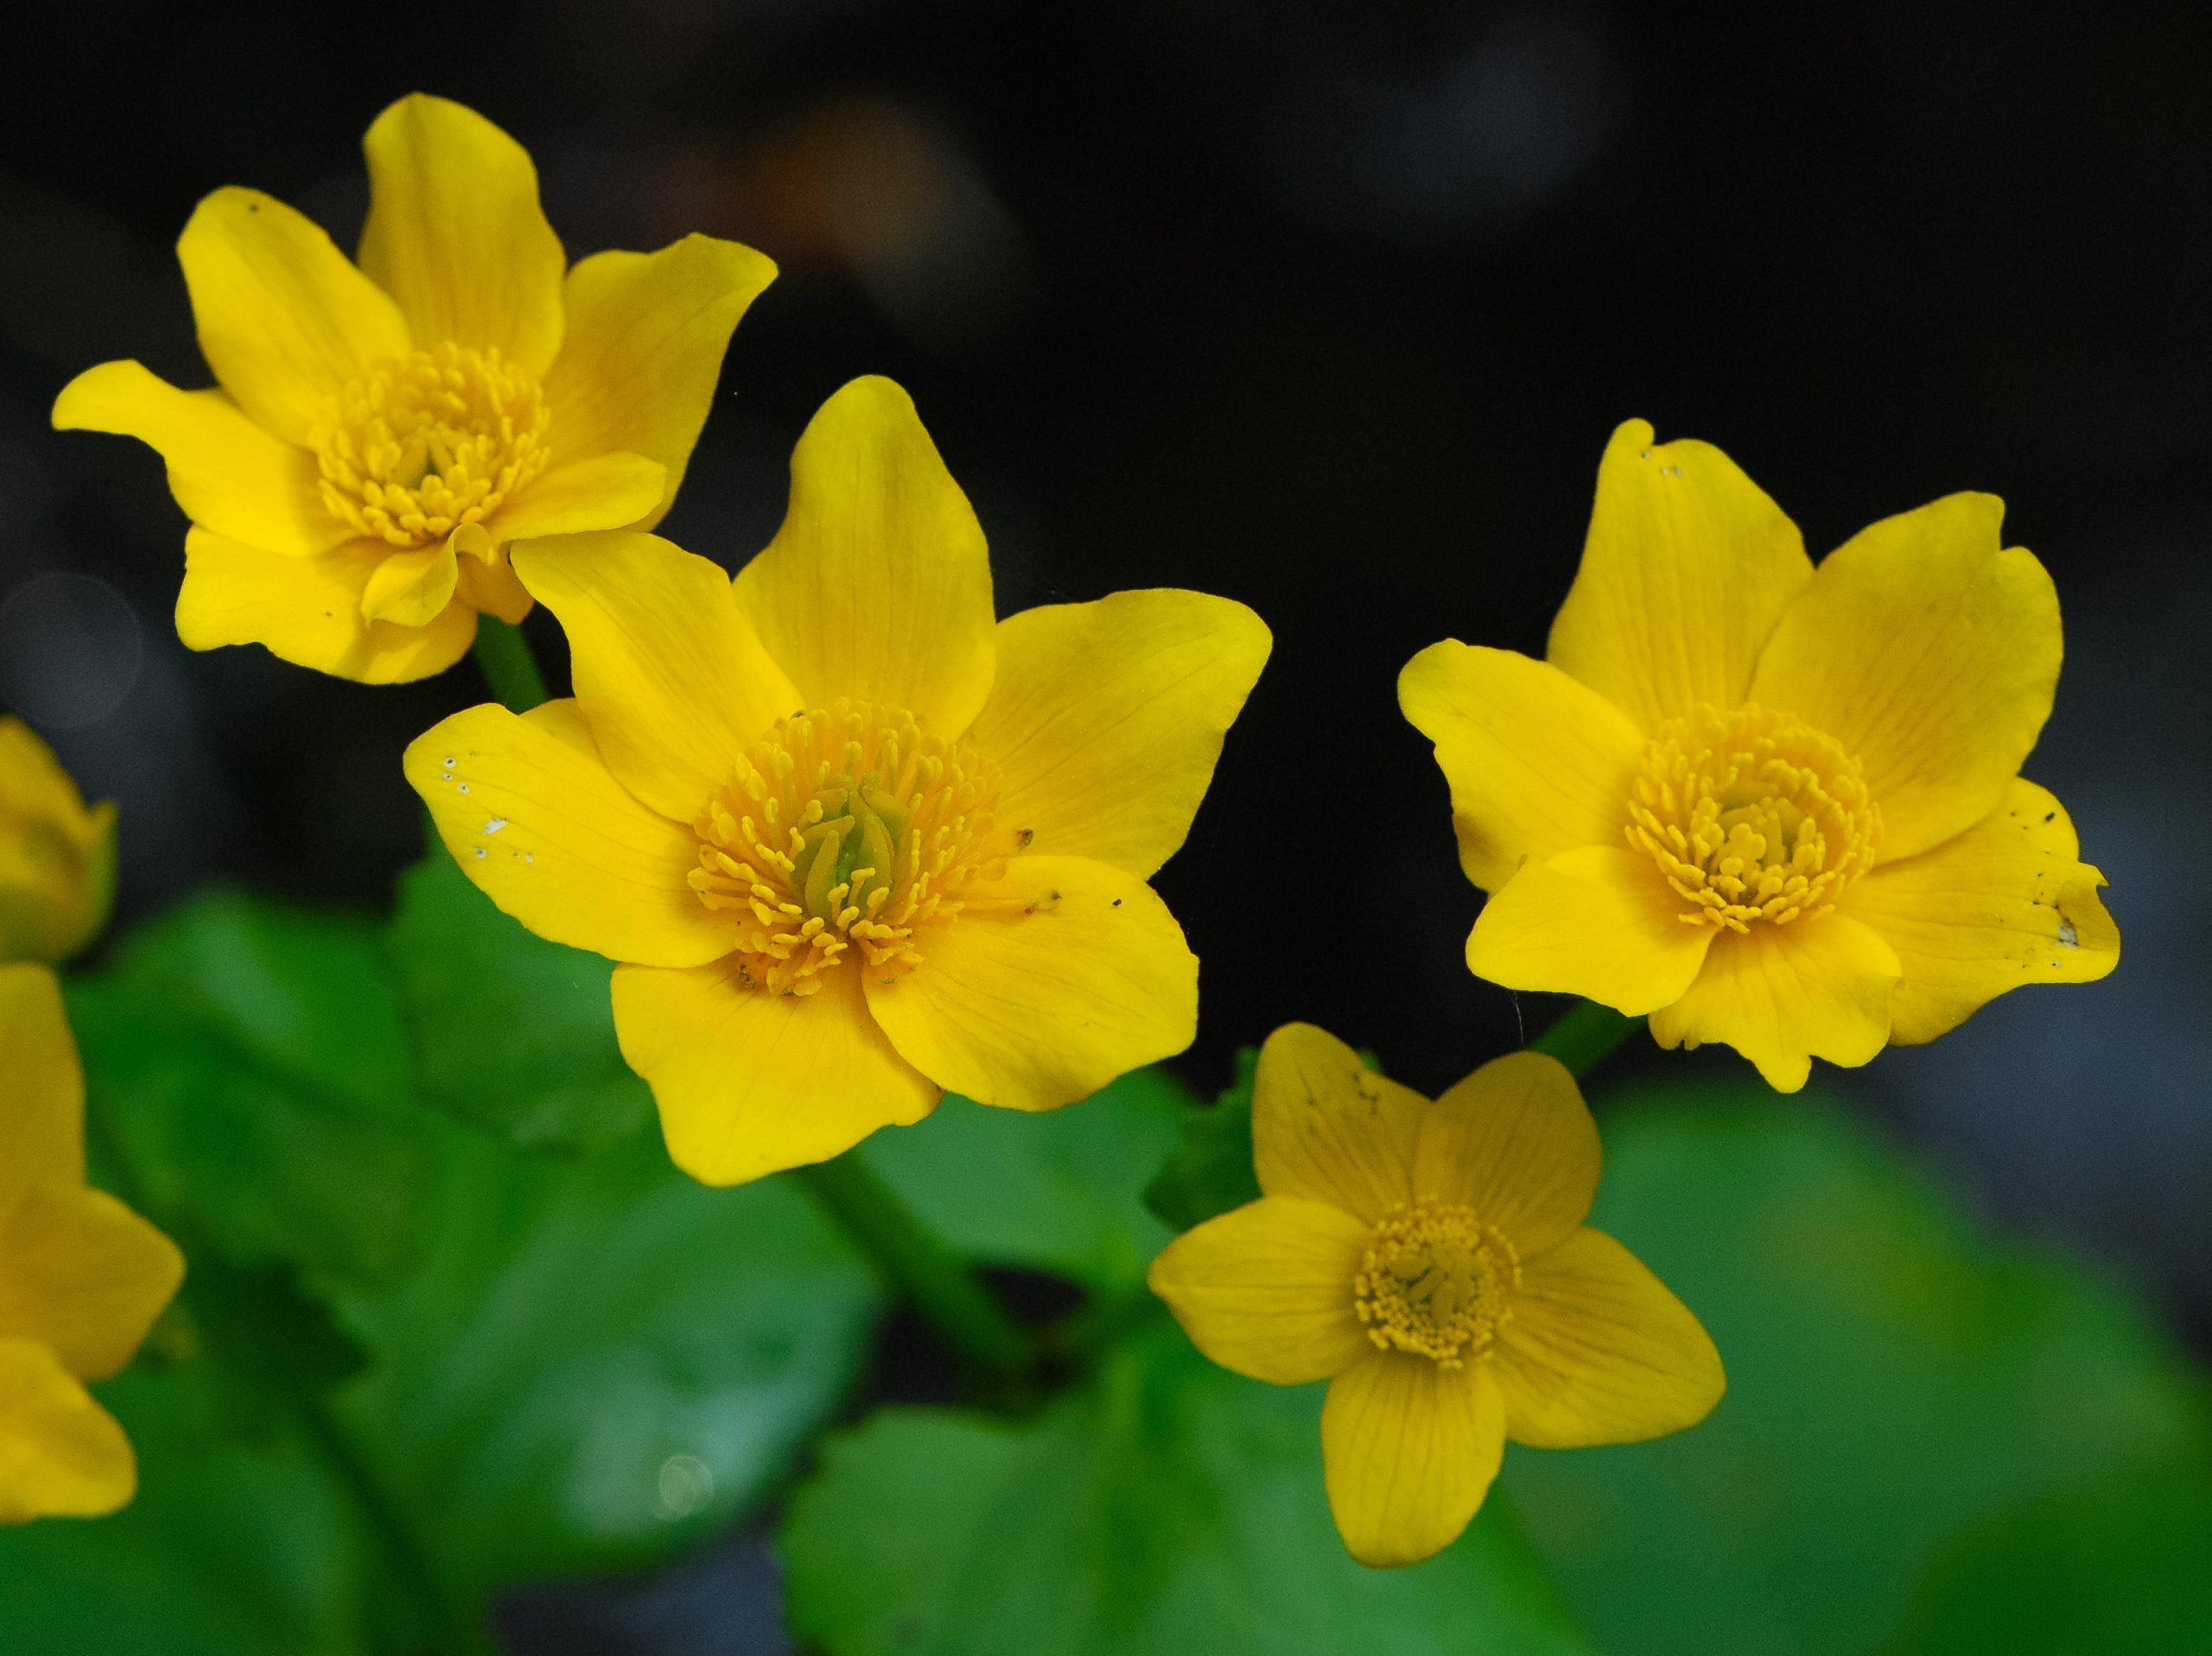 Marsh Marigold (Caltha palustris). Photo courtesy flickr user Joshua Mayer.